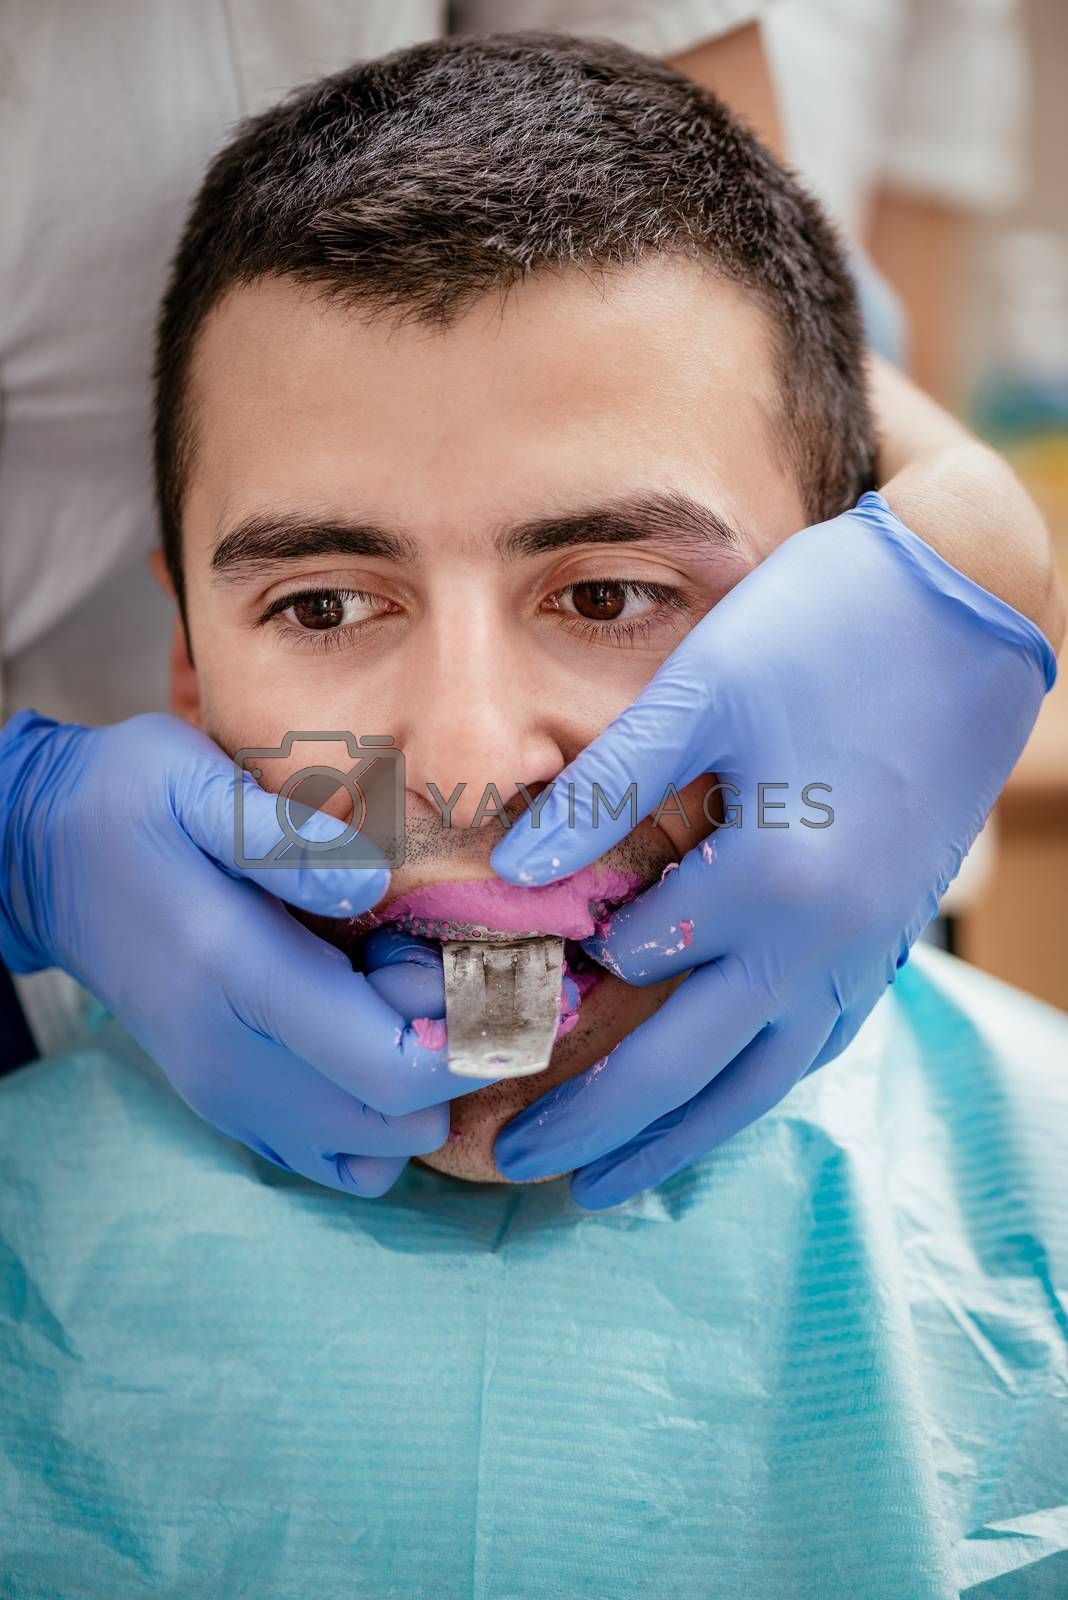 Dentist using dental impression for braces to the male patient. Close-up. Real people.